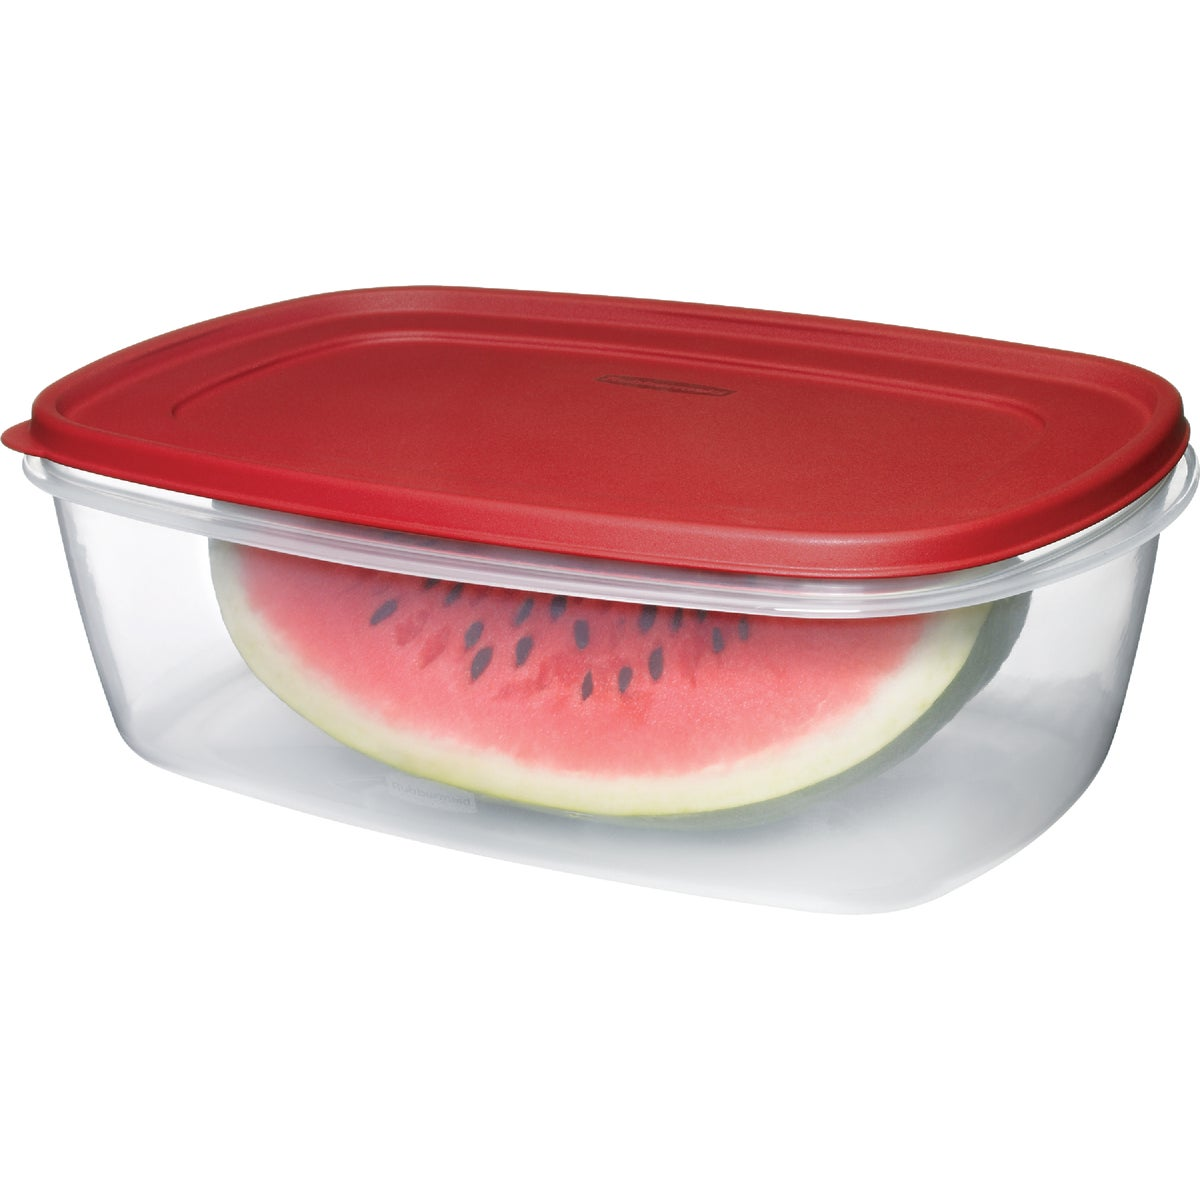 2.5GAL FOOD CONTAINER - 1777164 by Rubbermaid Home